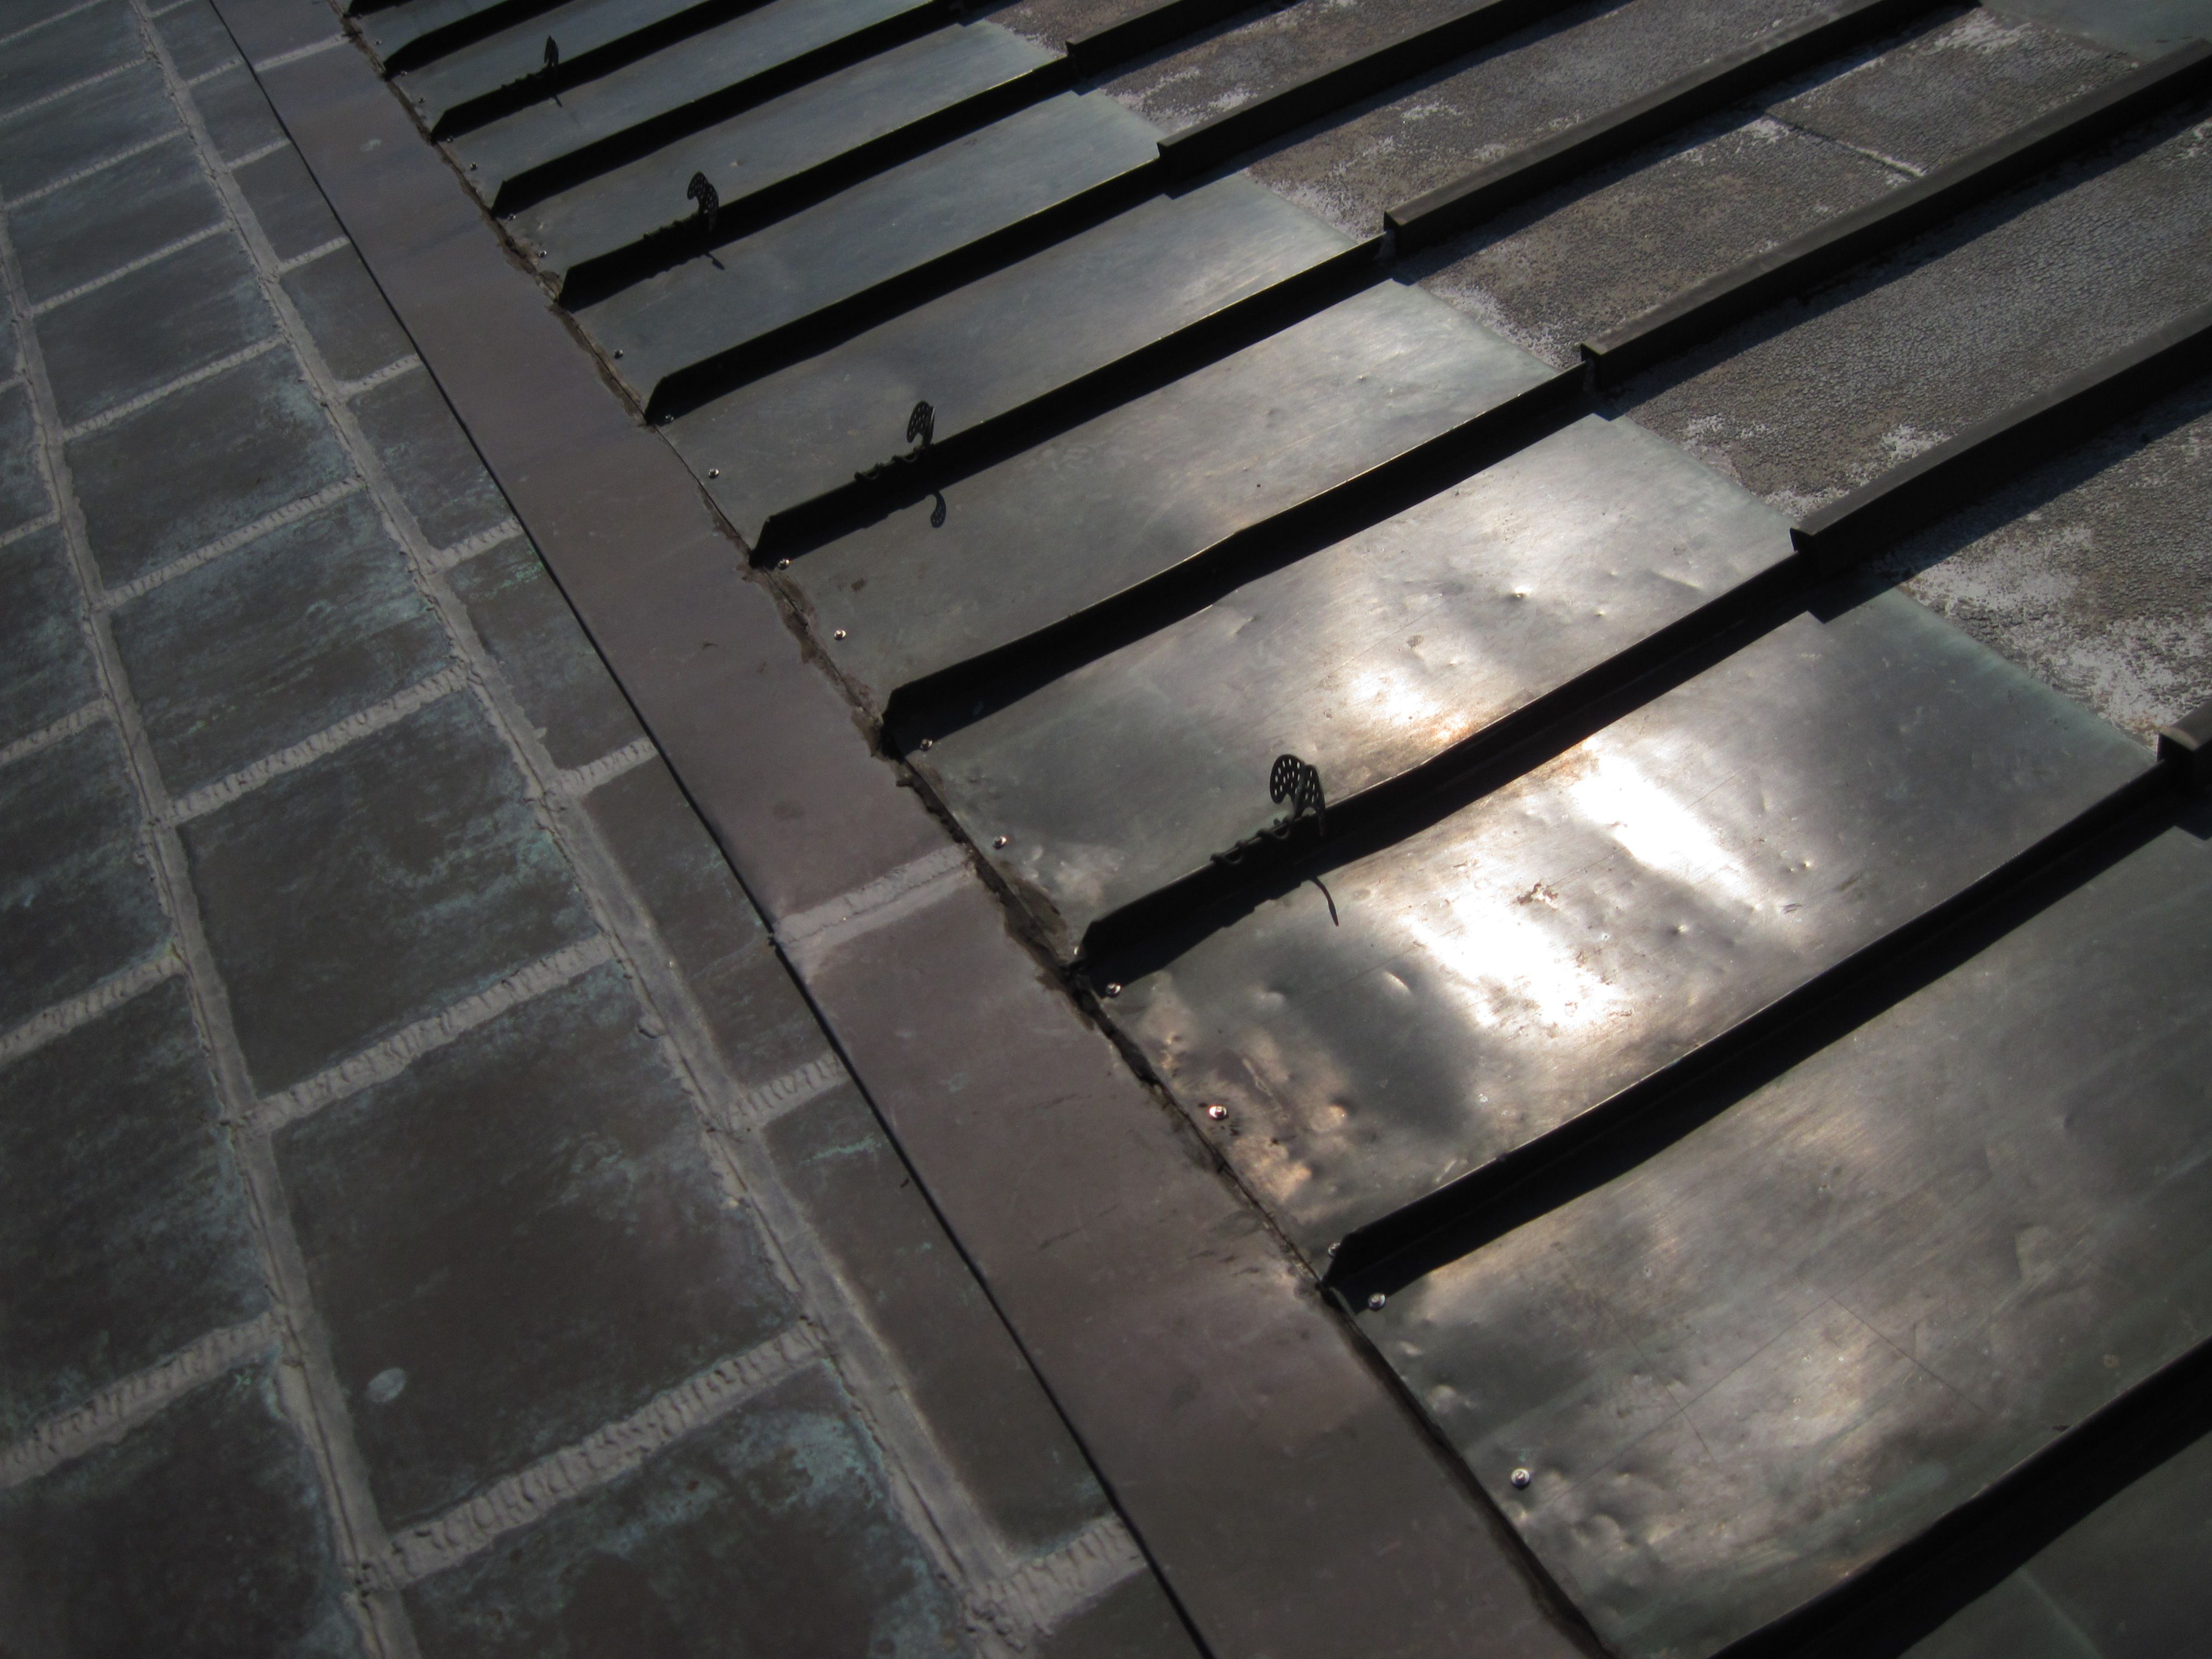 Solutions For Copper Roofs Lapping Cleats That Allow Sheets To Slide Standing Seam Right Or Small Sheet Sections Flat Sea Copper Roof Standing Seam Copper